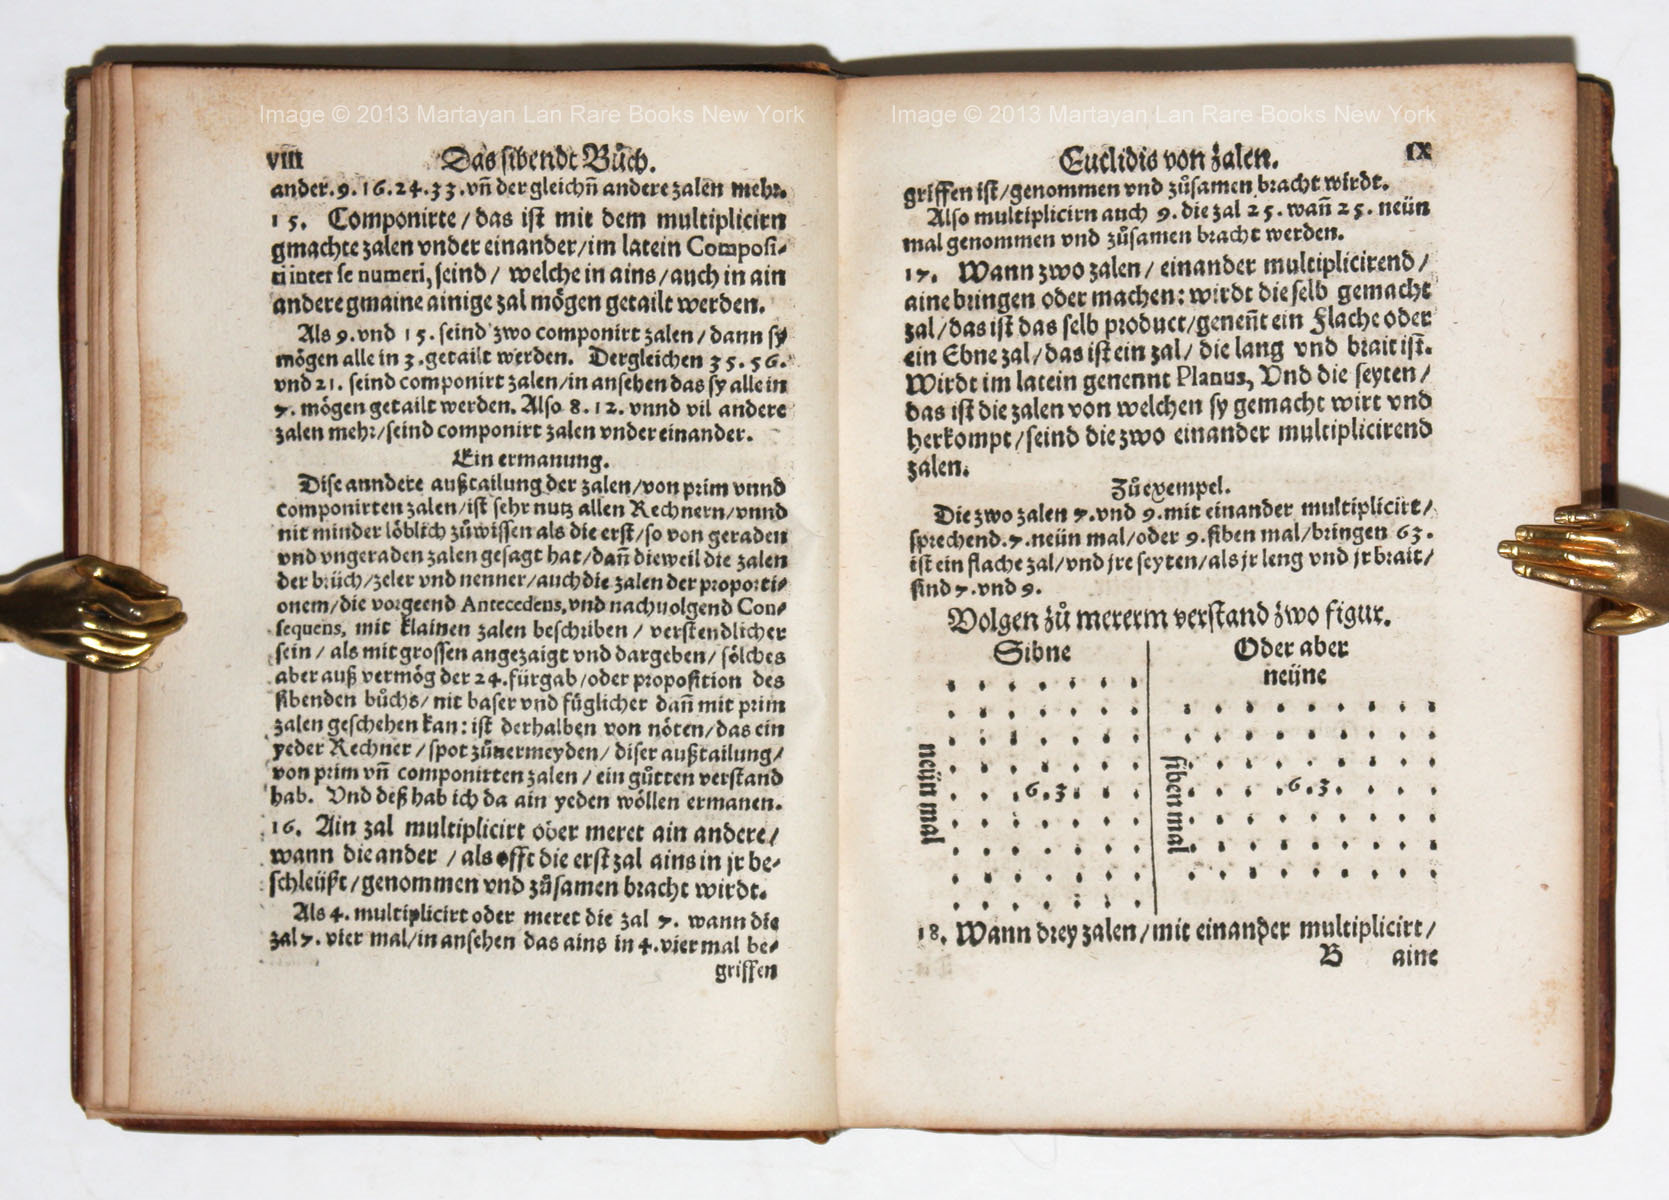 1555 Scheubel's multiplication definition from Euclid's Elements